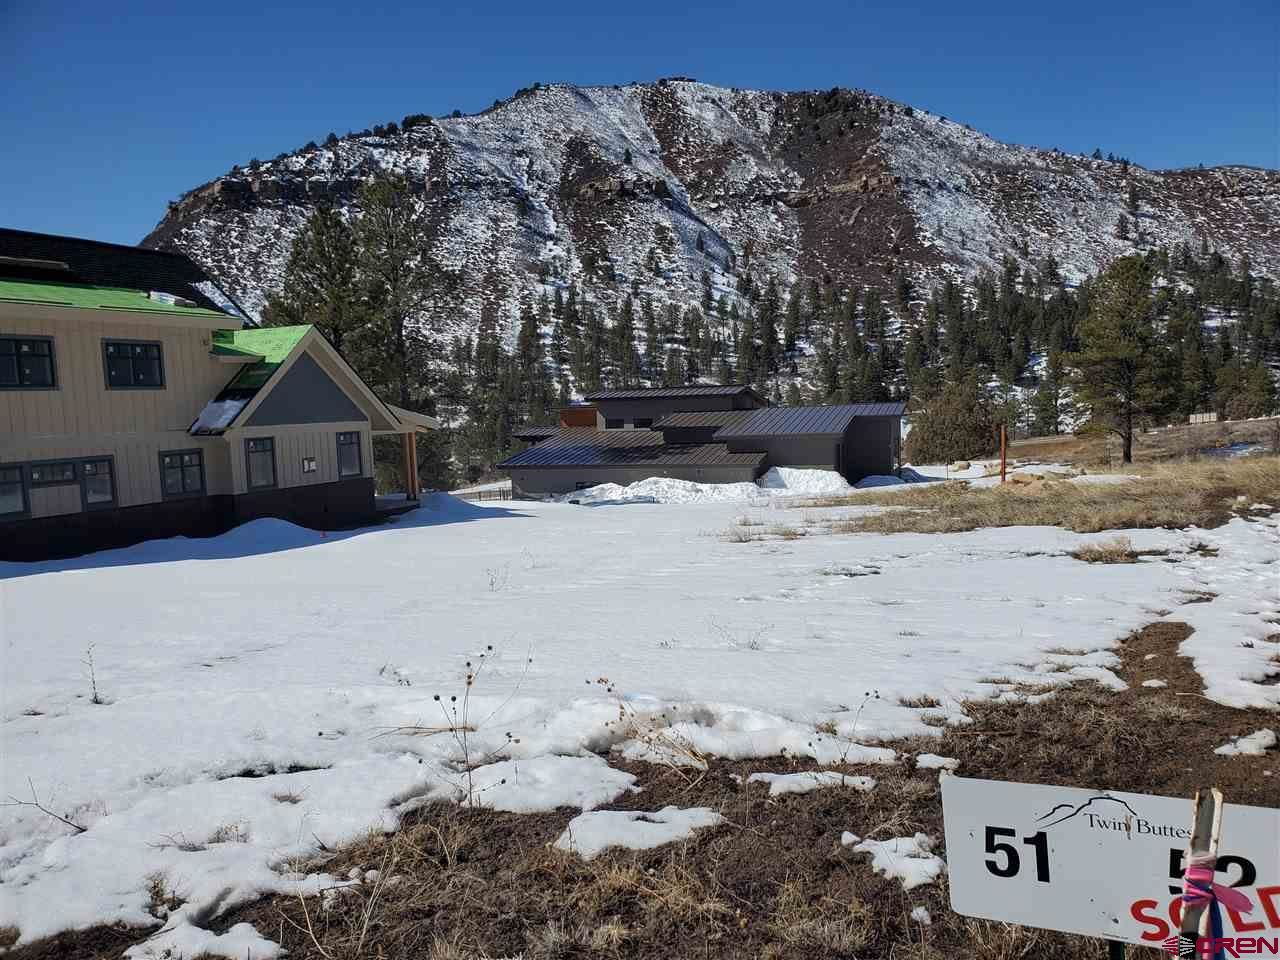 Photo for (Lot 51) 27 Wild Iris Avenue, Durango, CO 81301 (MLS # 750959)